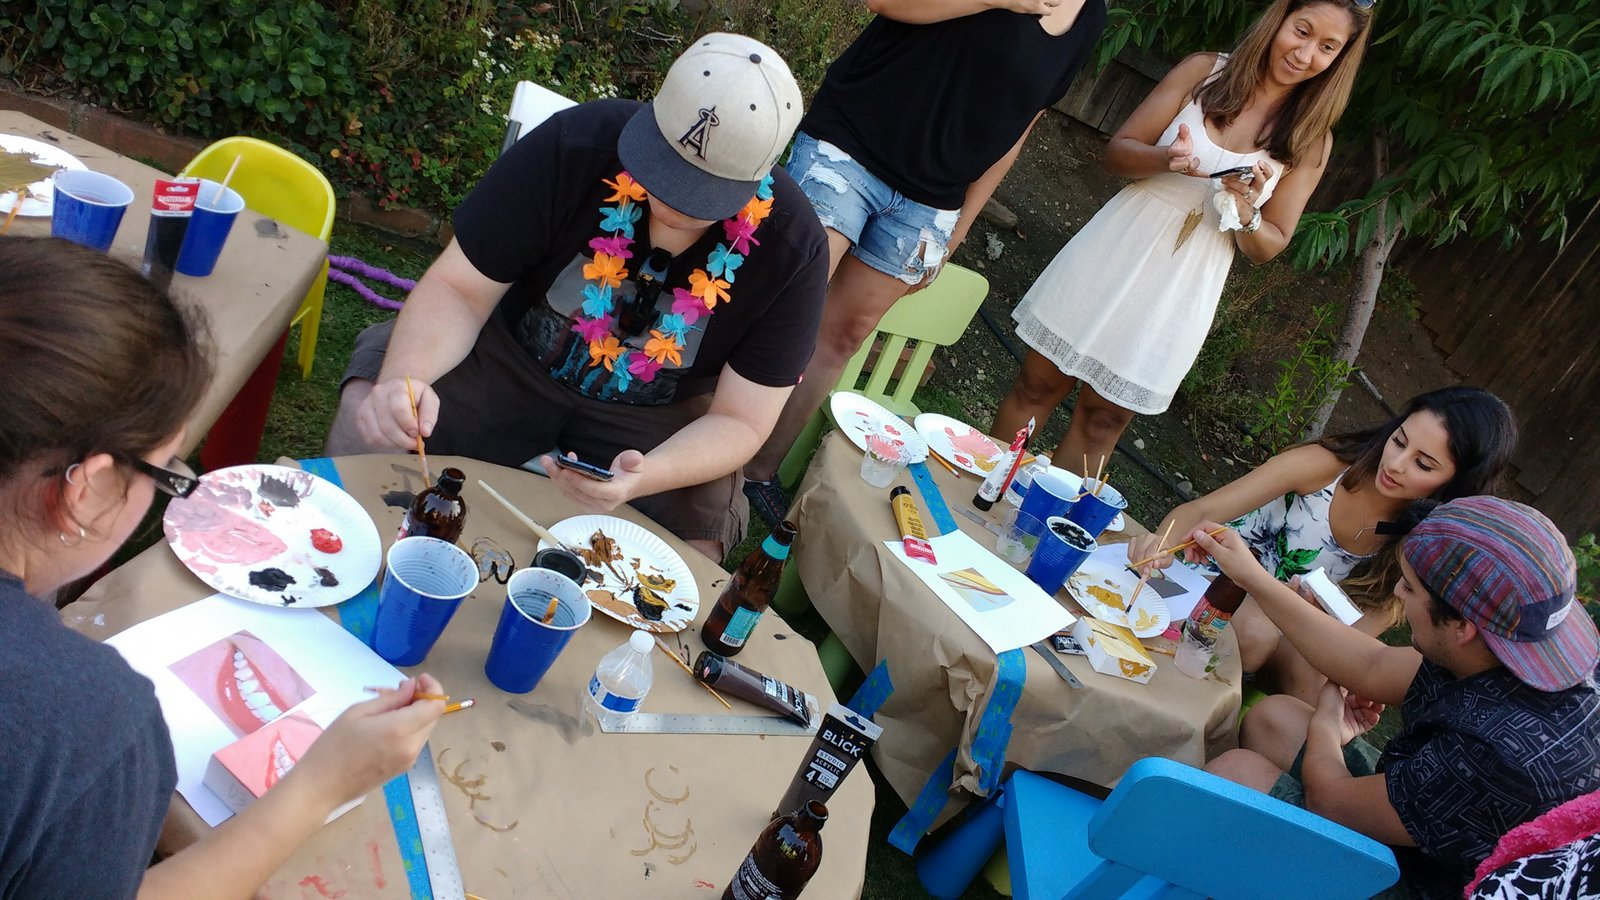 people painting at a backyard party